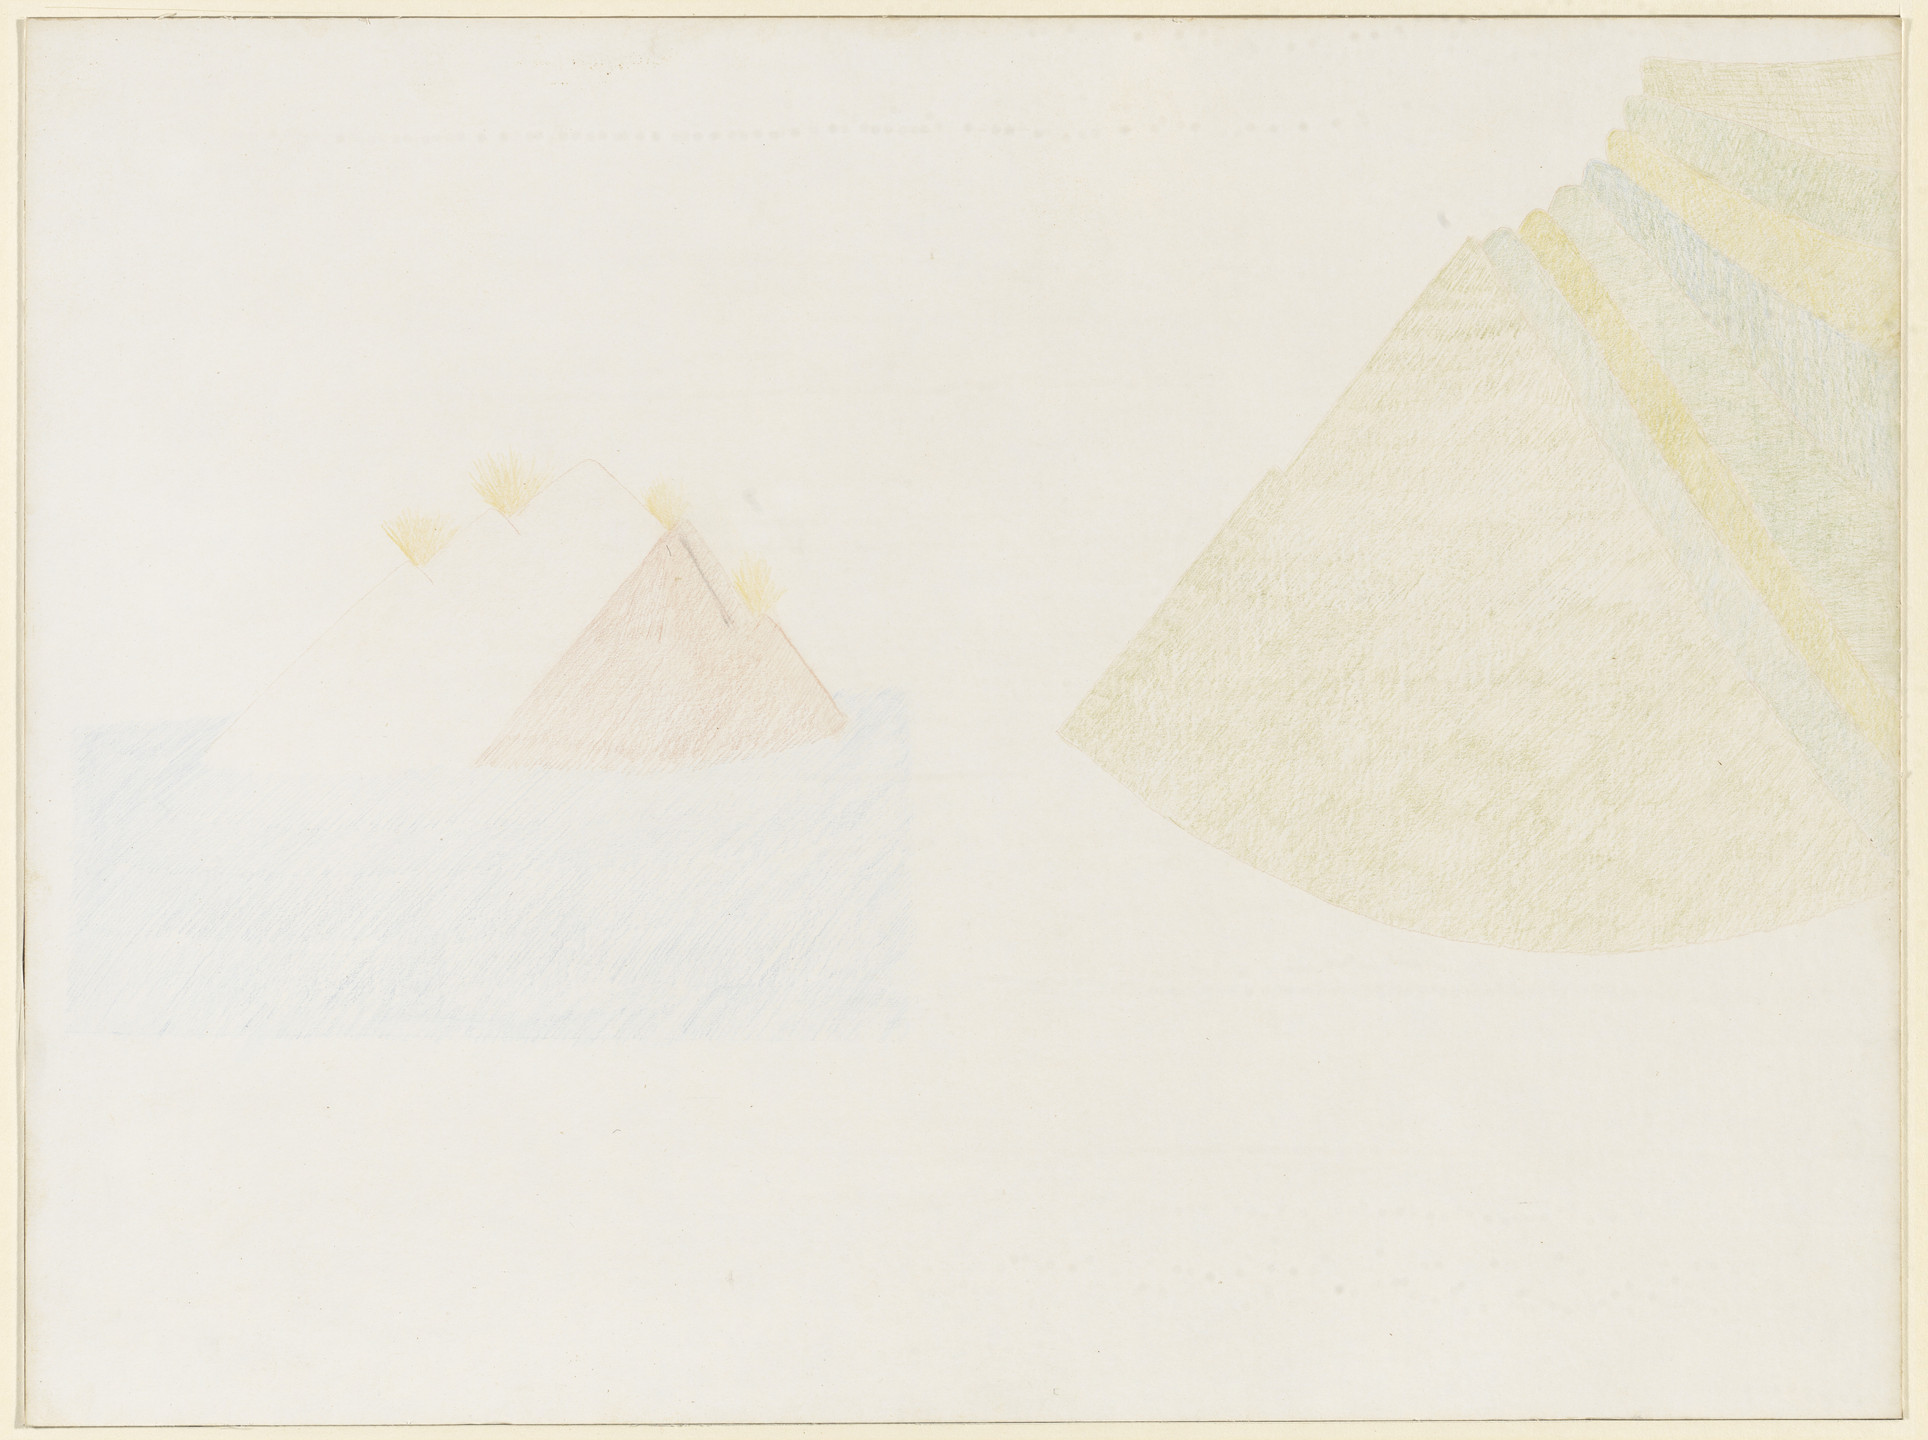 Walter De Maria. The Three Mountains with the Four Fires Floated on the Blue Sea toward the Green Mountains. 1964